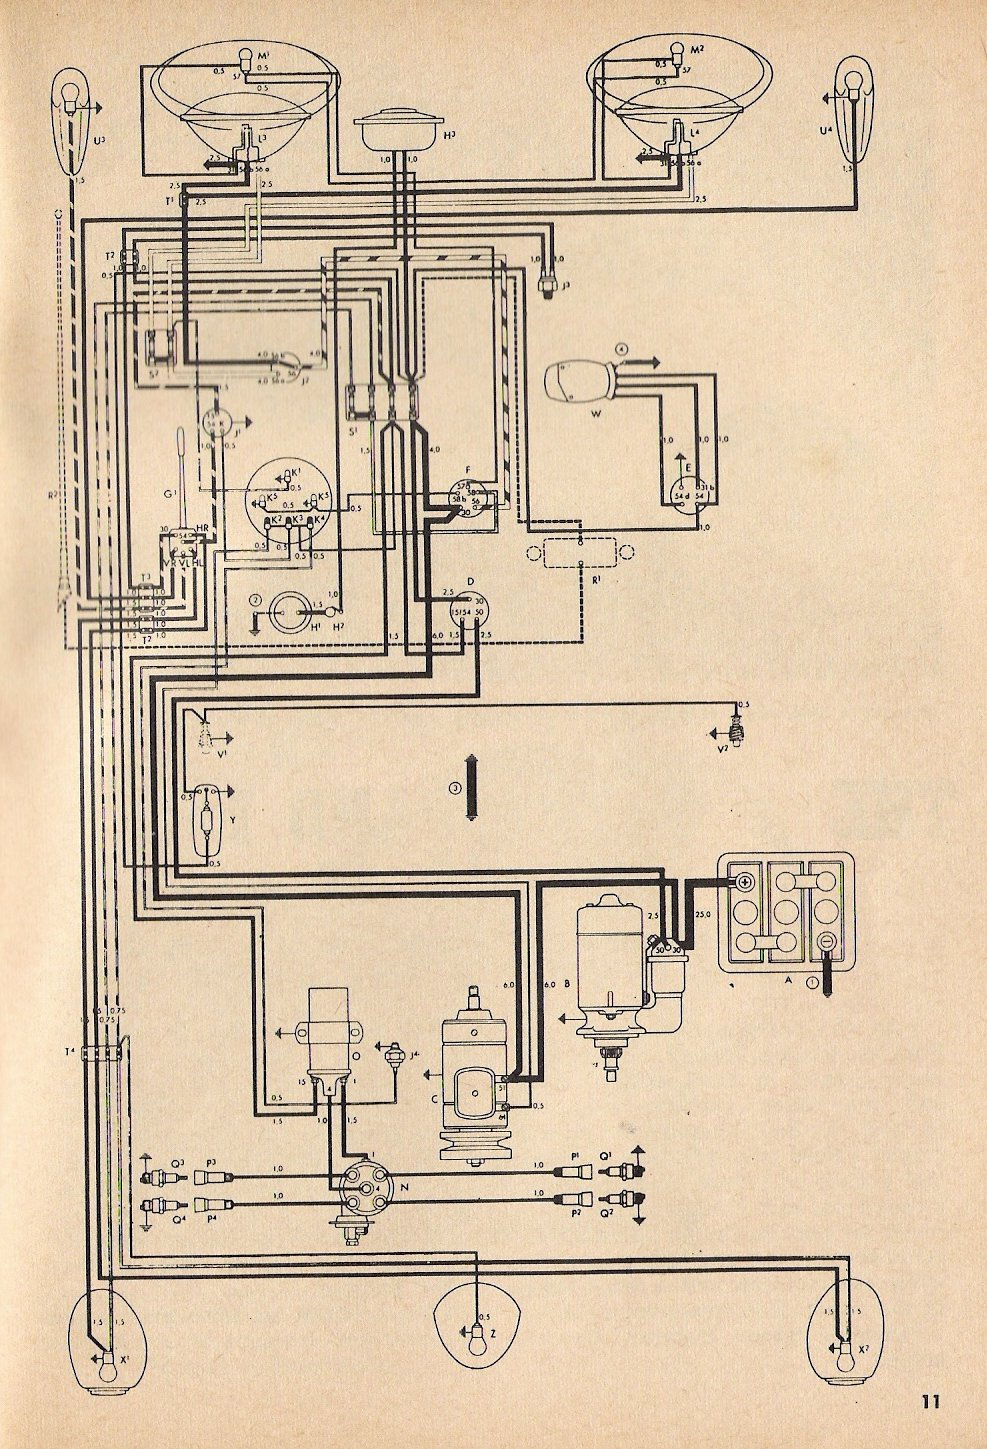 Type 1 Wiring Diagrams Alternator Diagram Also 1981 Chevy Truck On 350